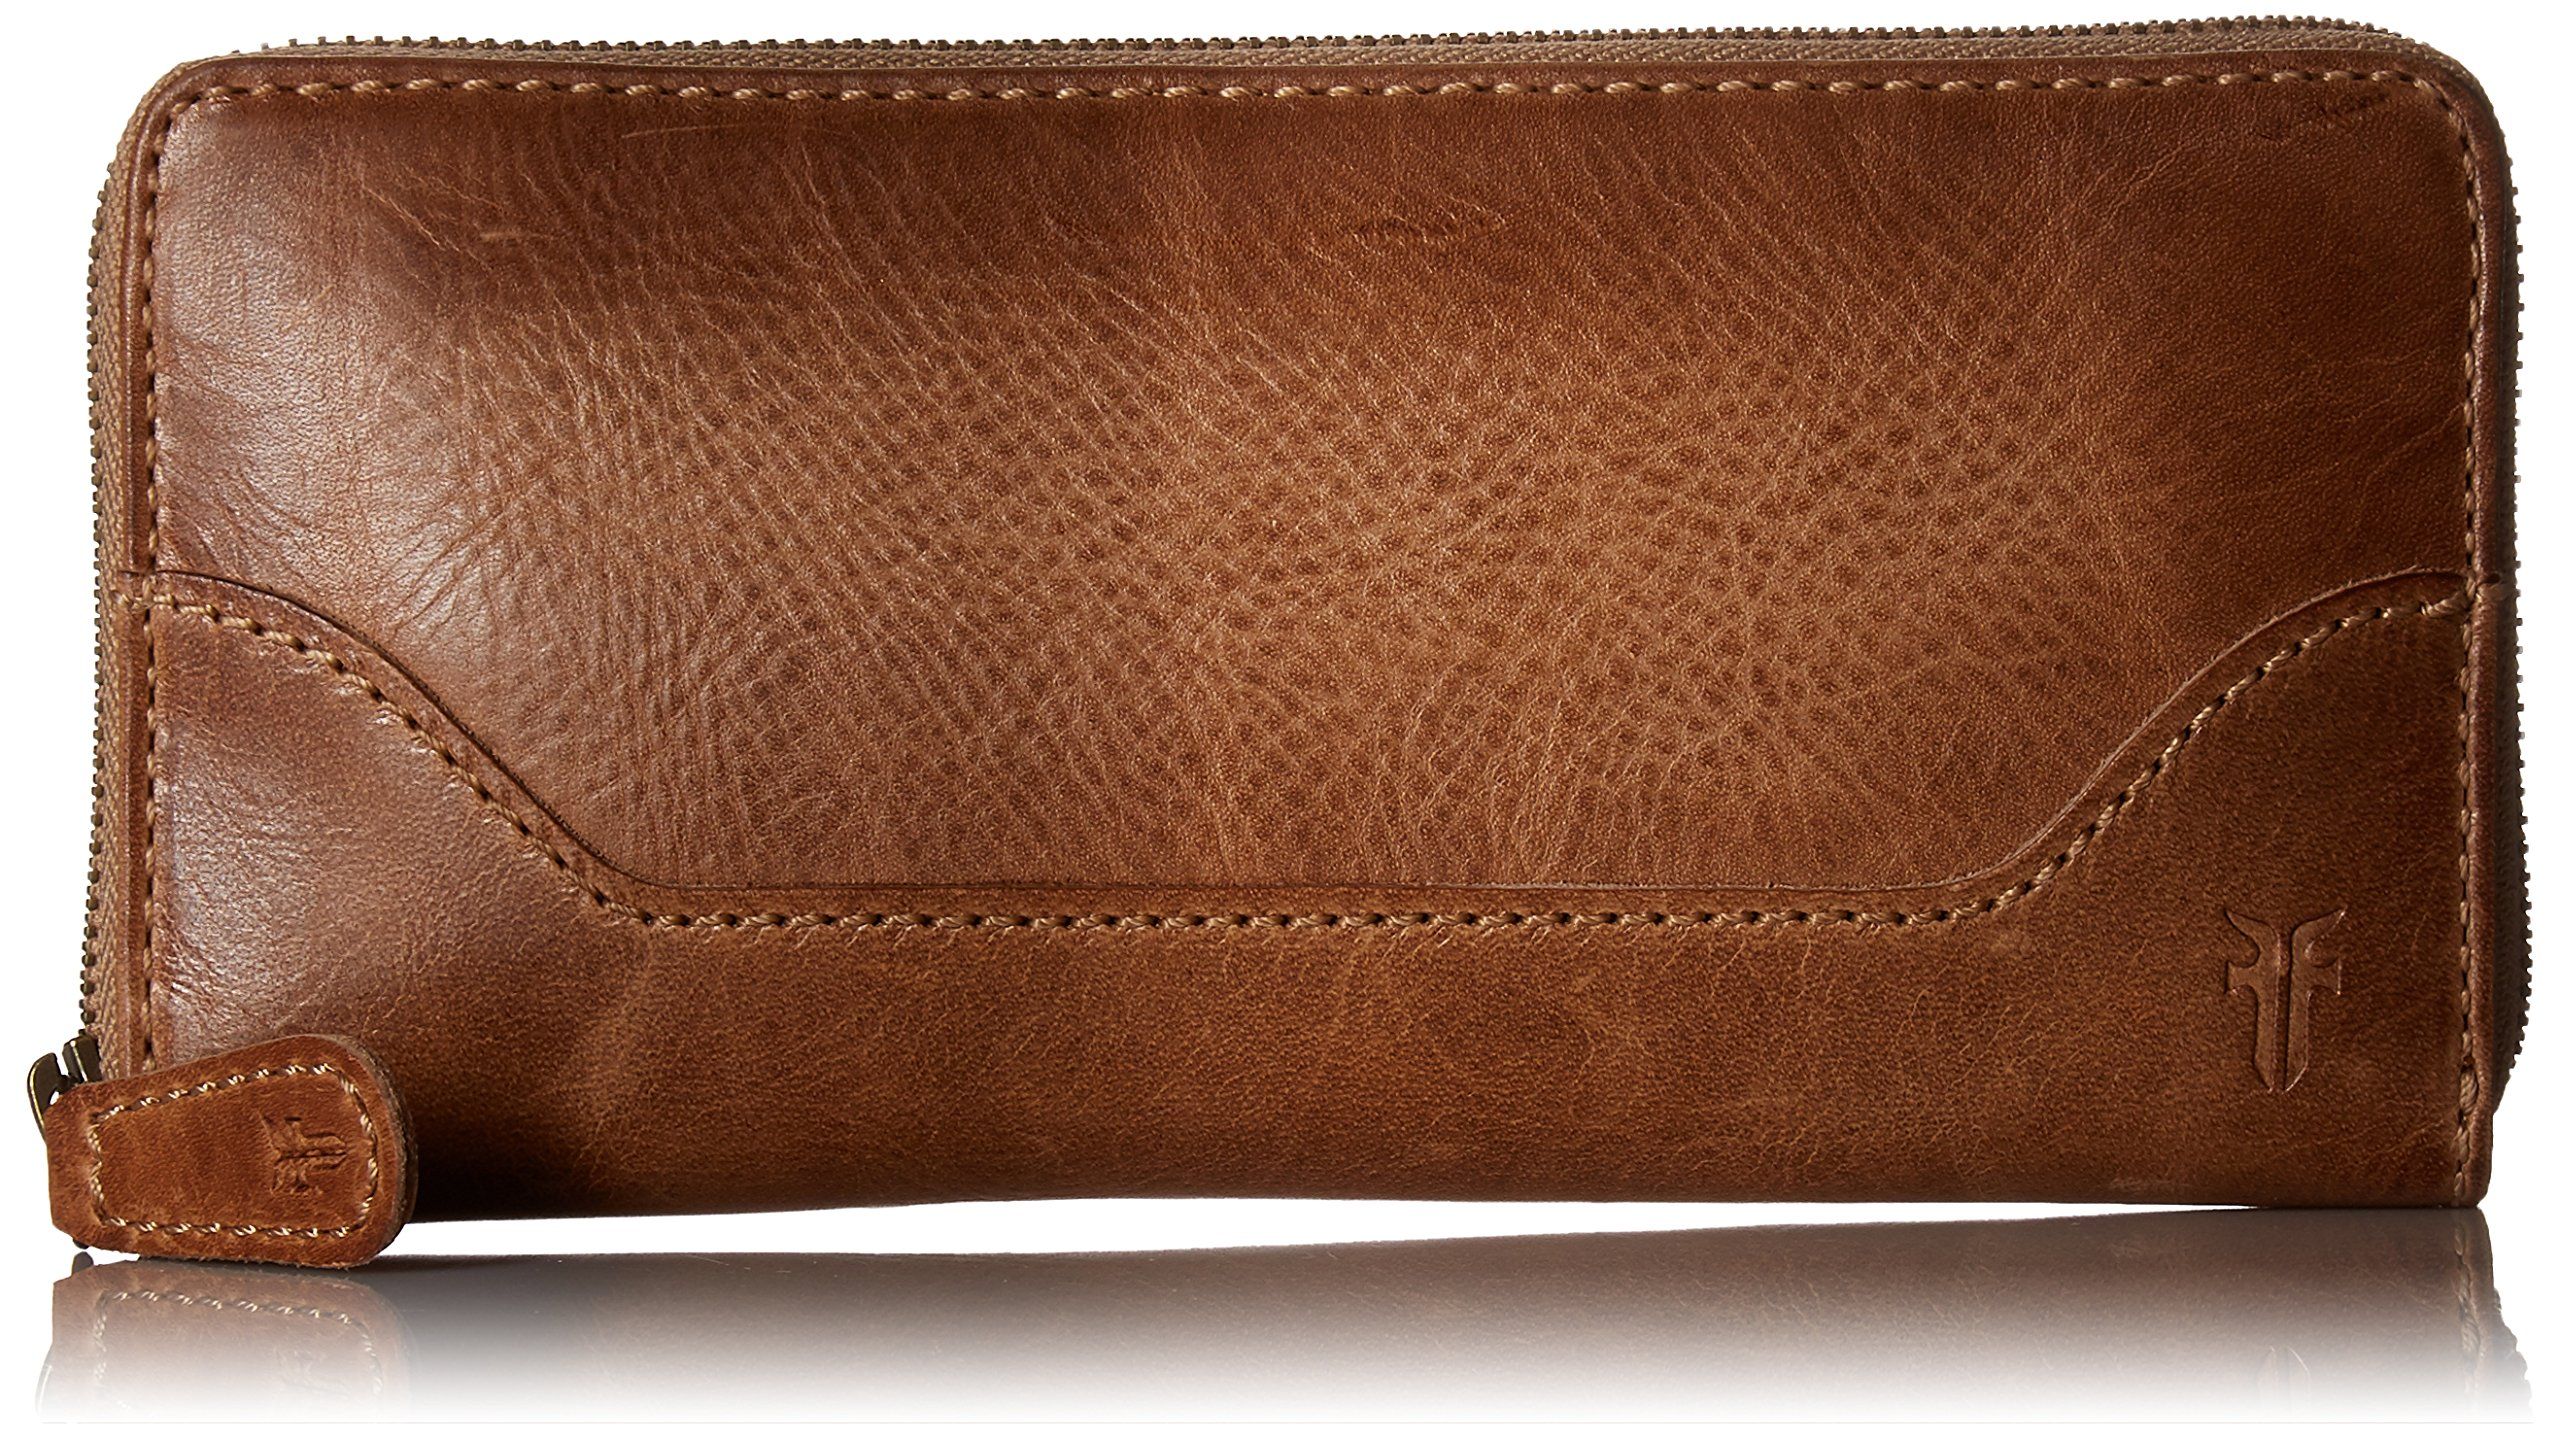 Melissa Zip Wallet, Beige by FRYE